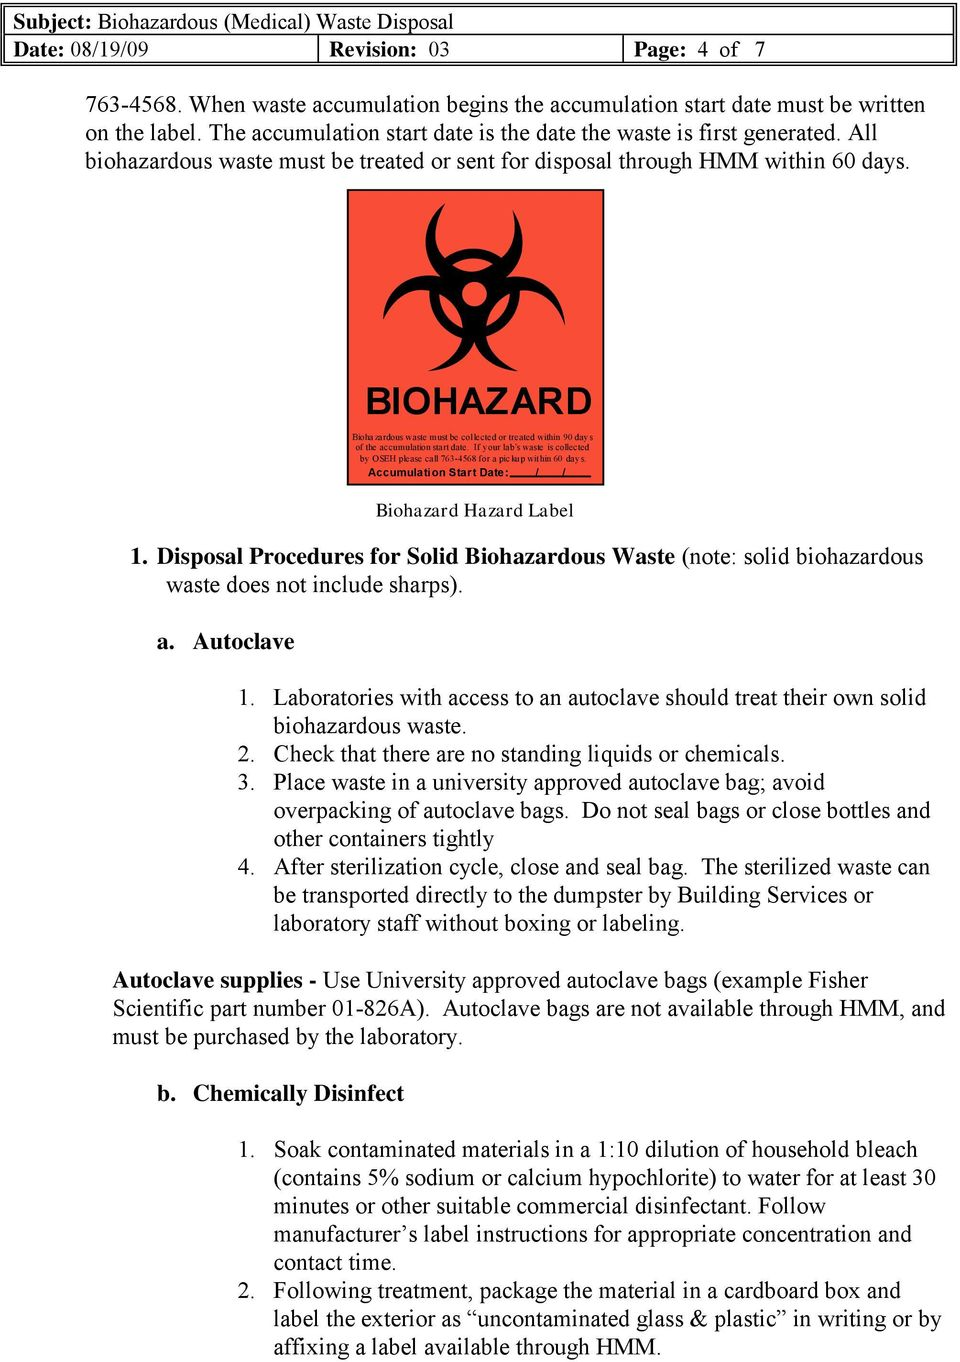 Disposal Procedures for Solid Biohazardous Waste (note: solid biohazardous waste does not include sharps). a. Autoclave 1.